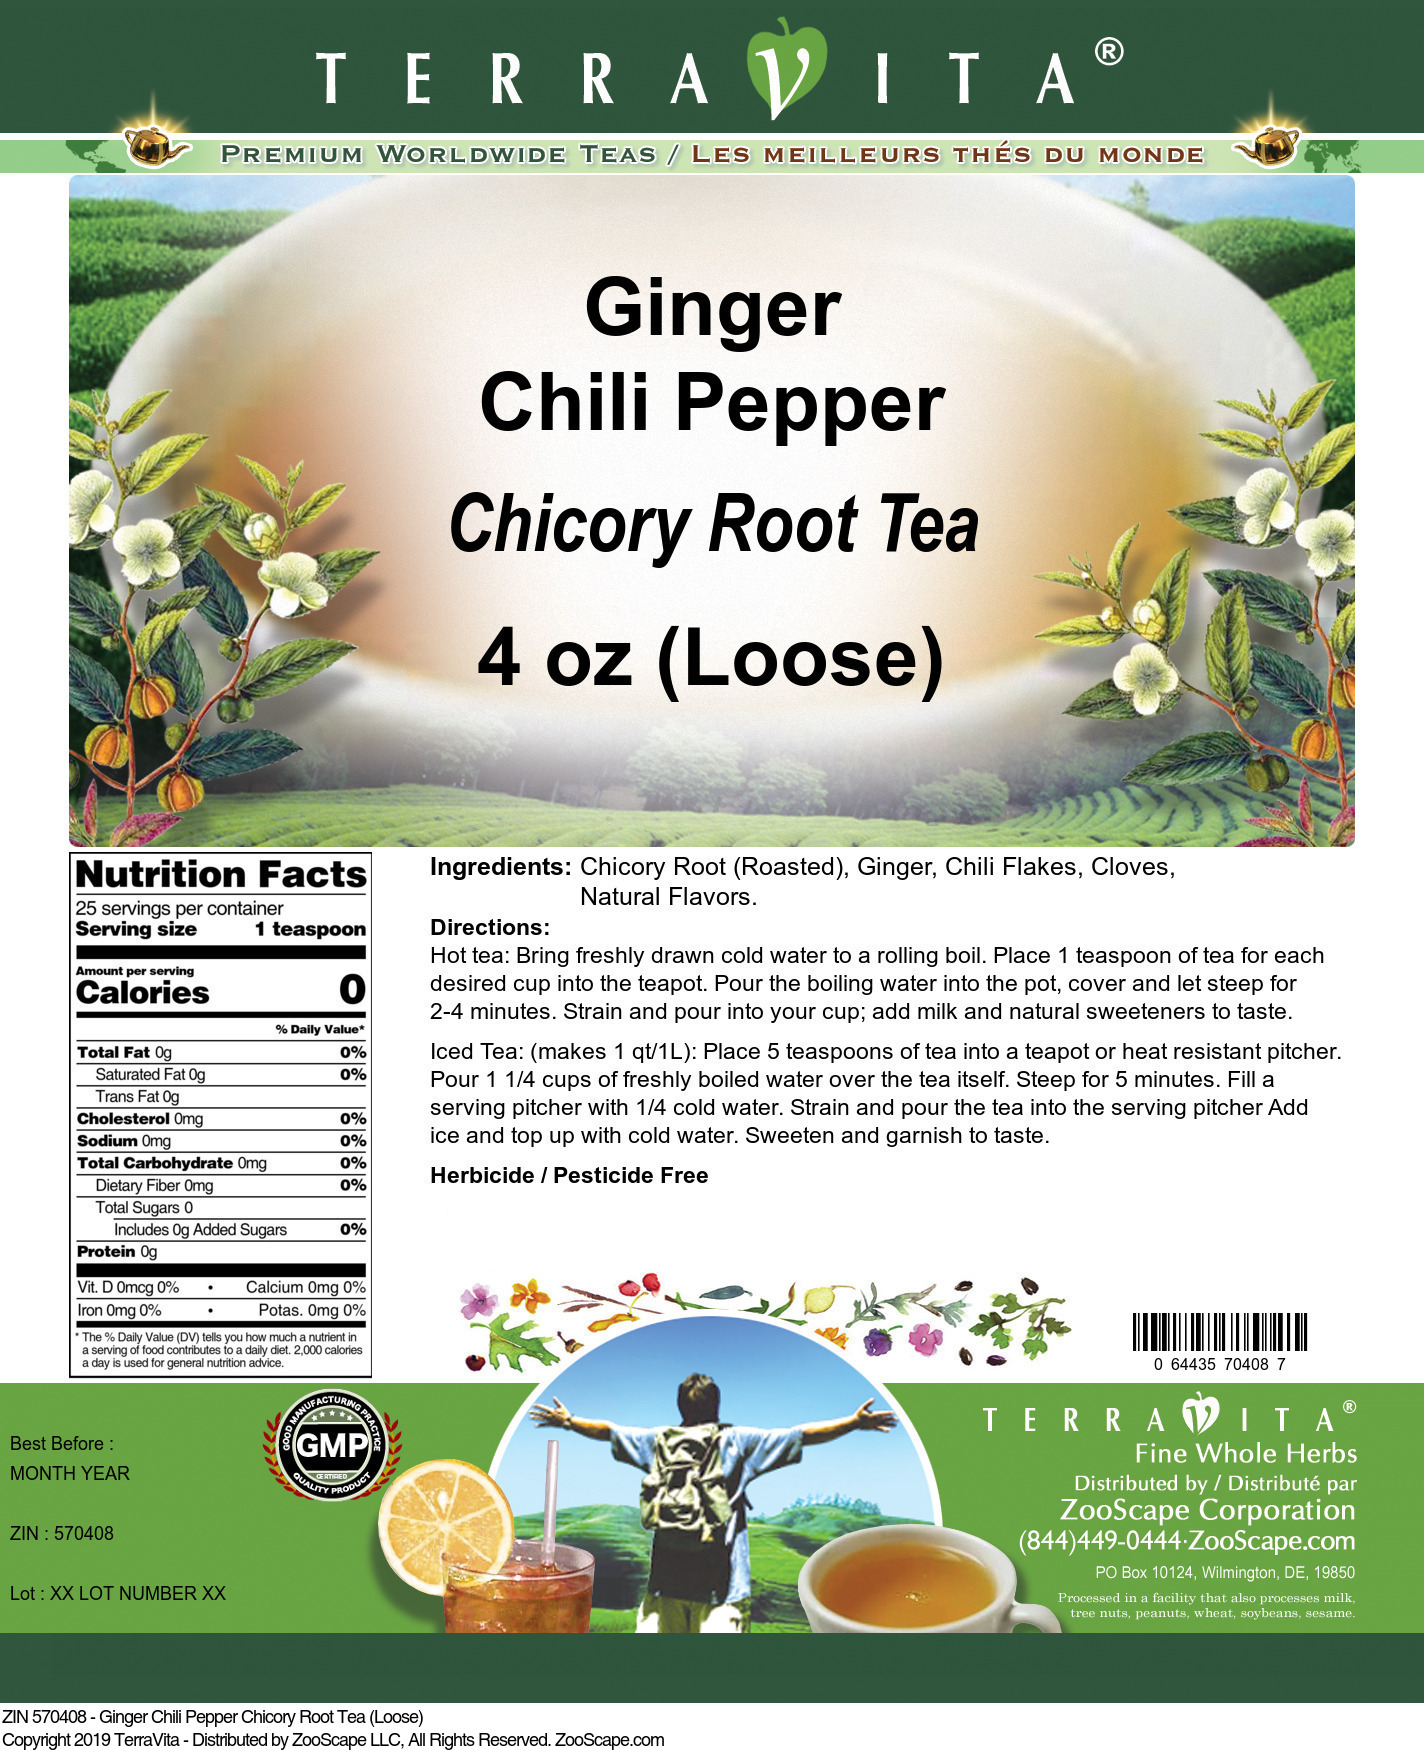 Ginger Chili Pepper Chicory Root Tea (Loose)